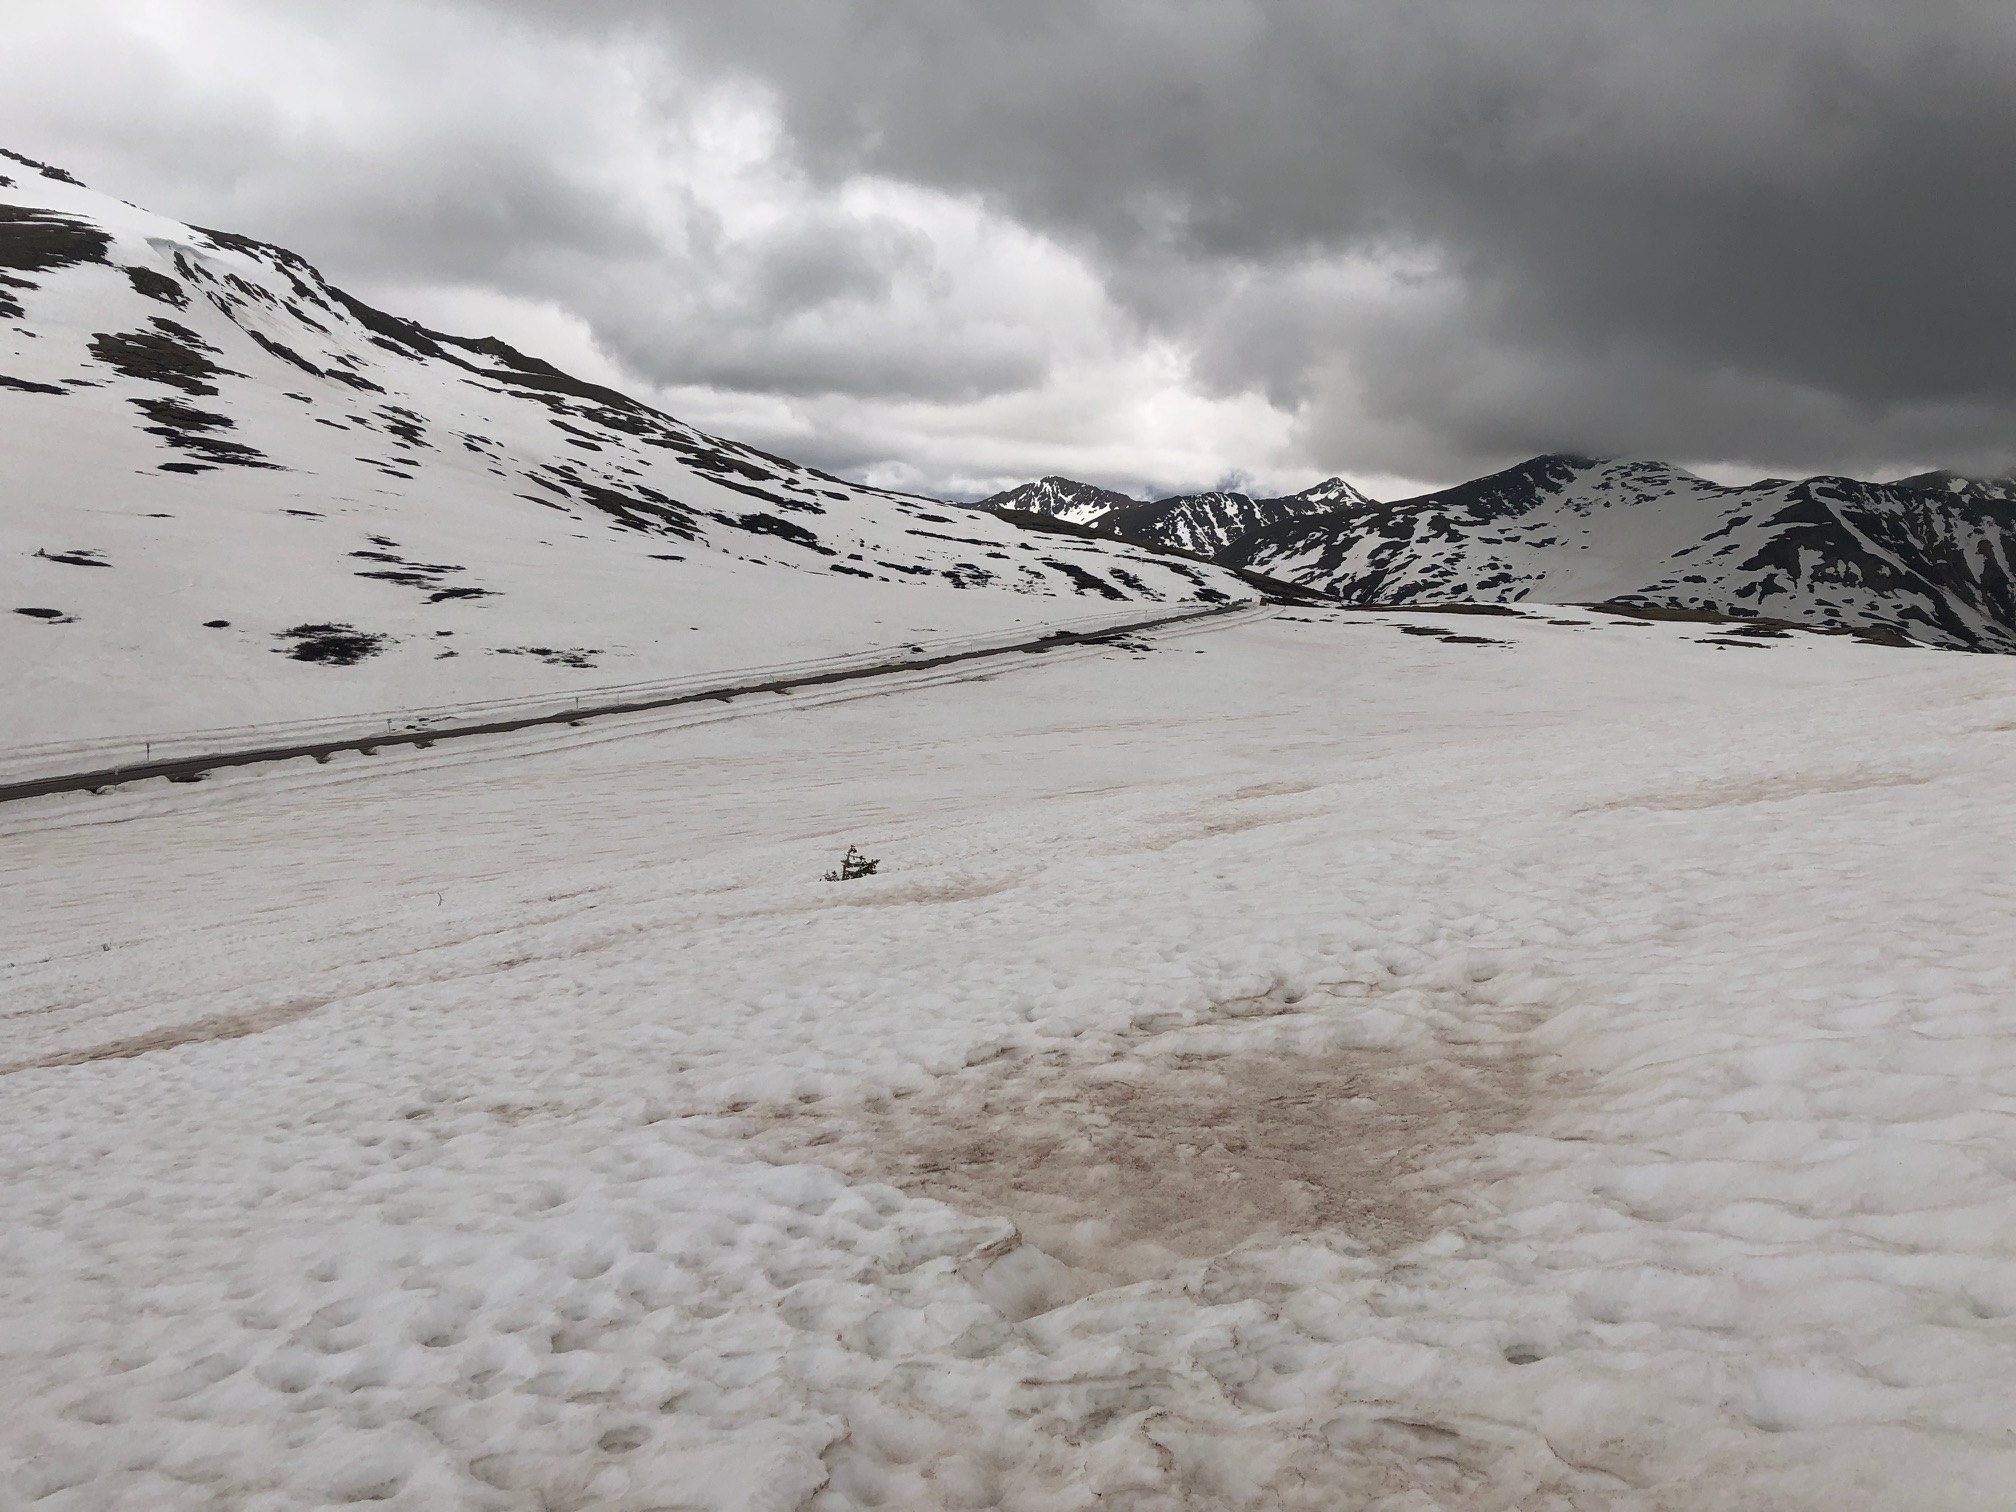 2019 snowpack early June